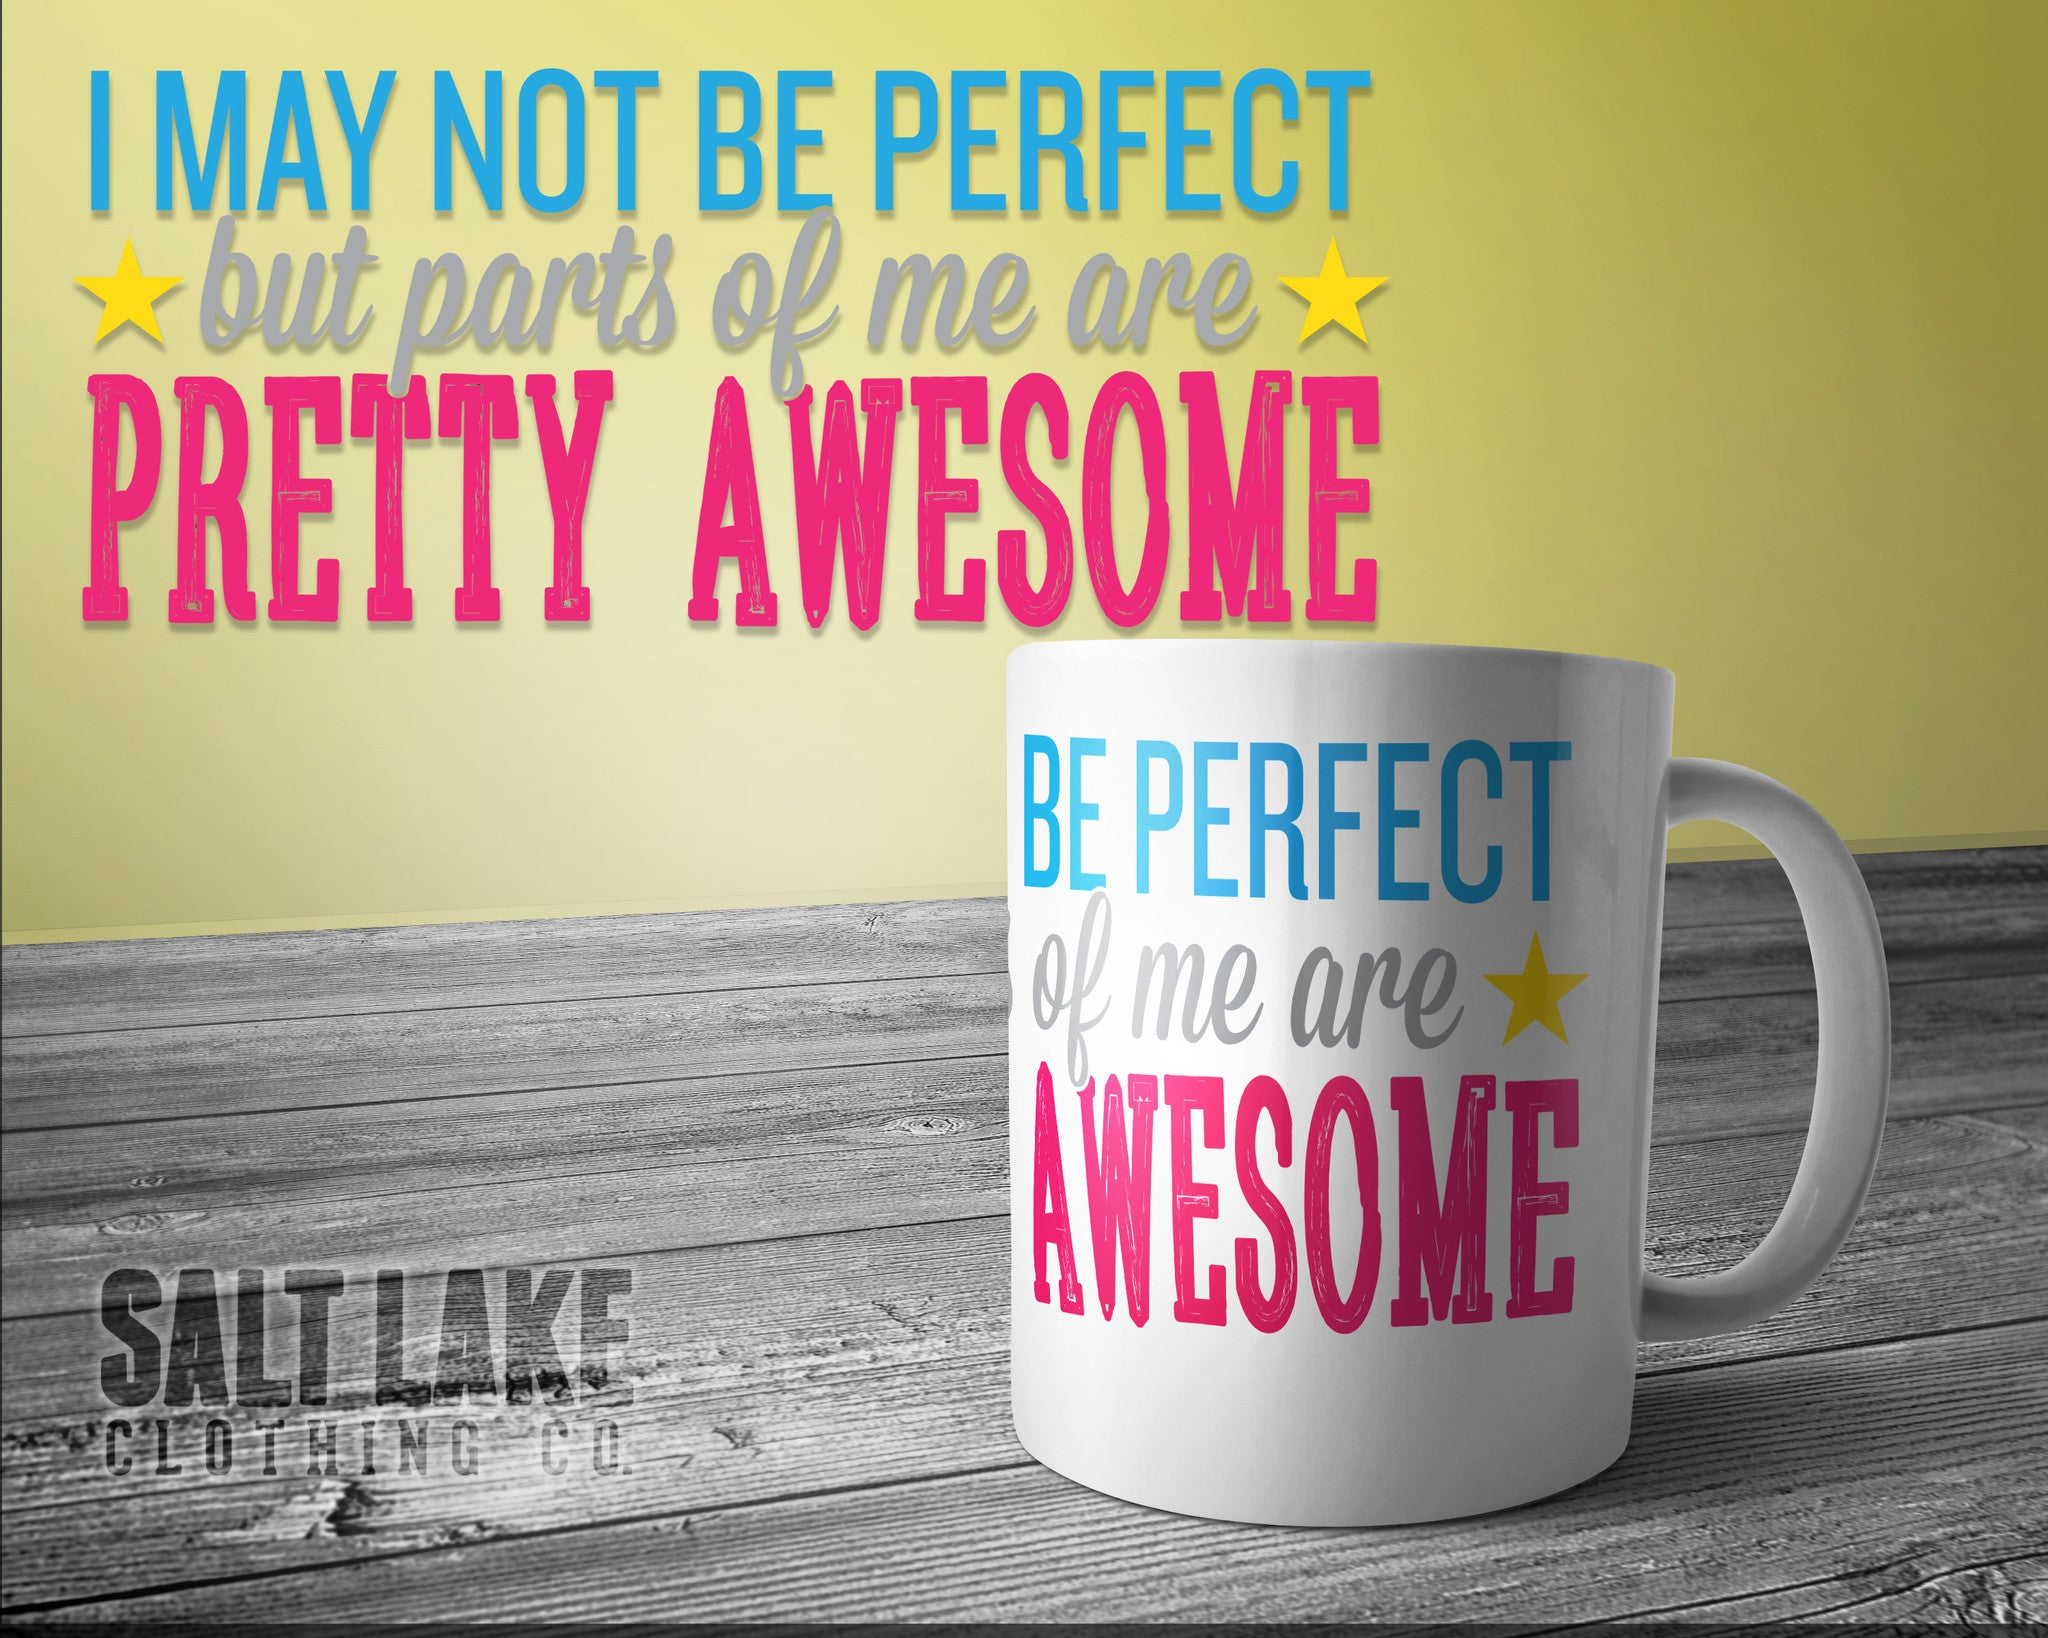 Parts of Me Are Awesome Ceramic 11 0z. Coffee Mug